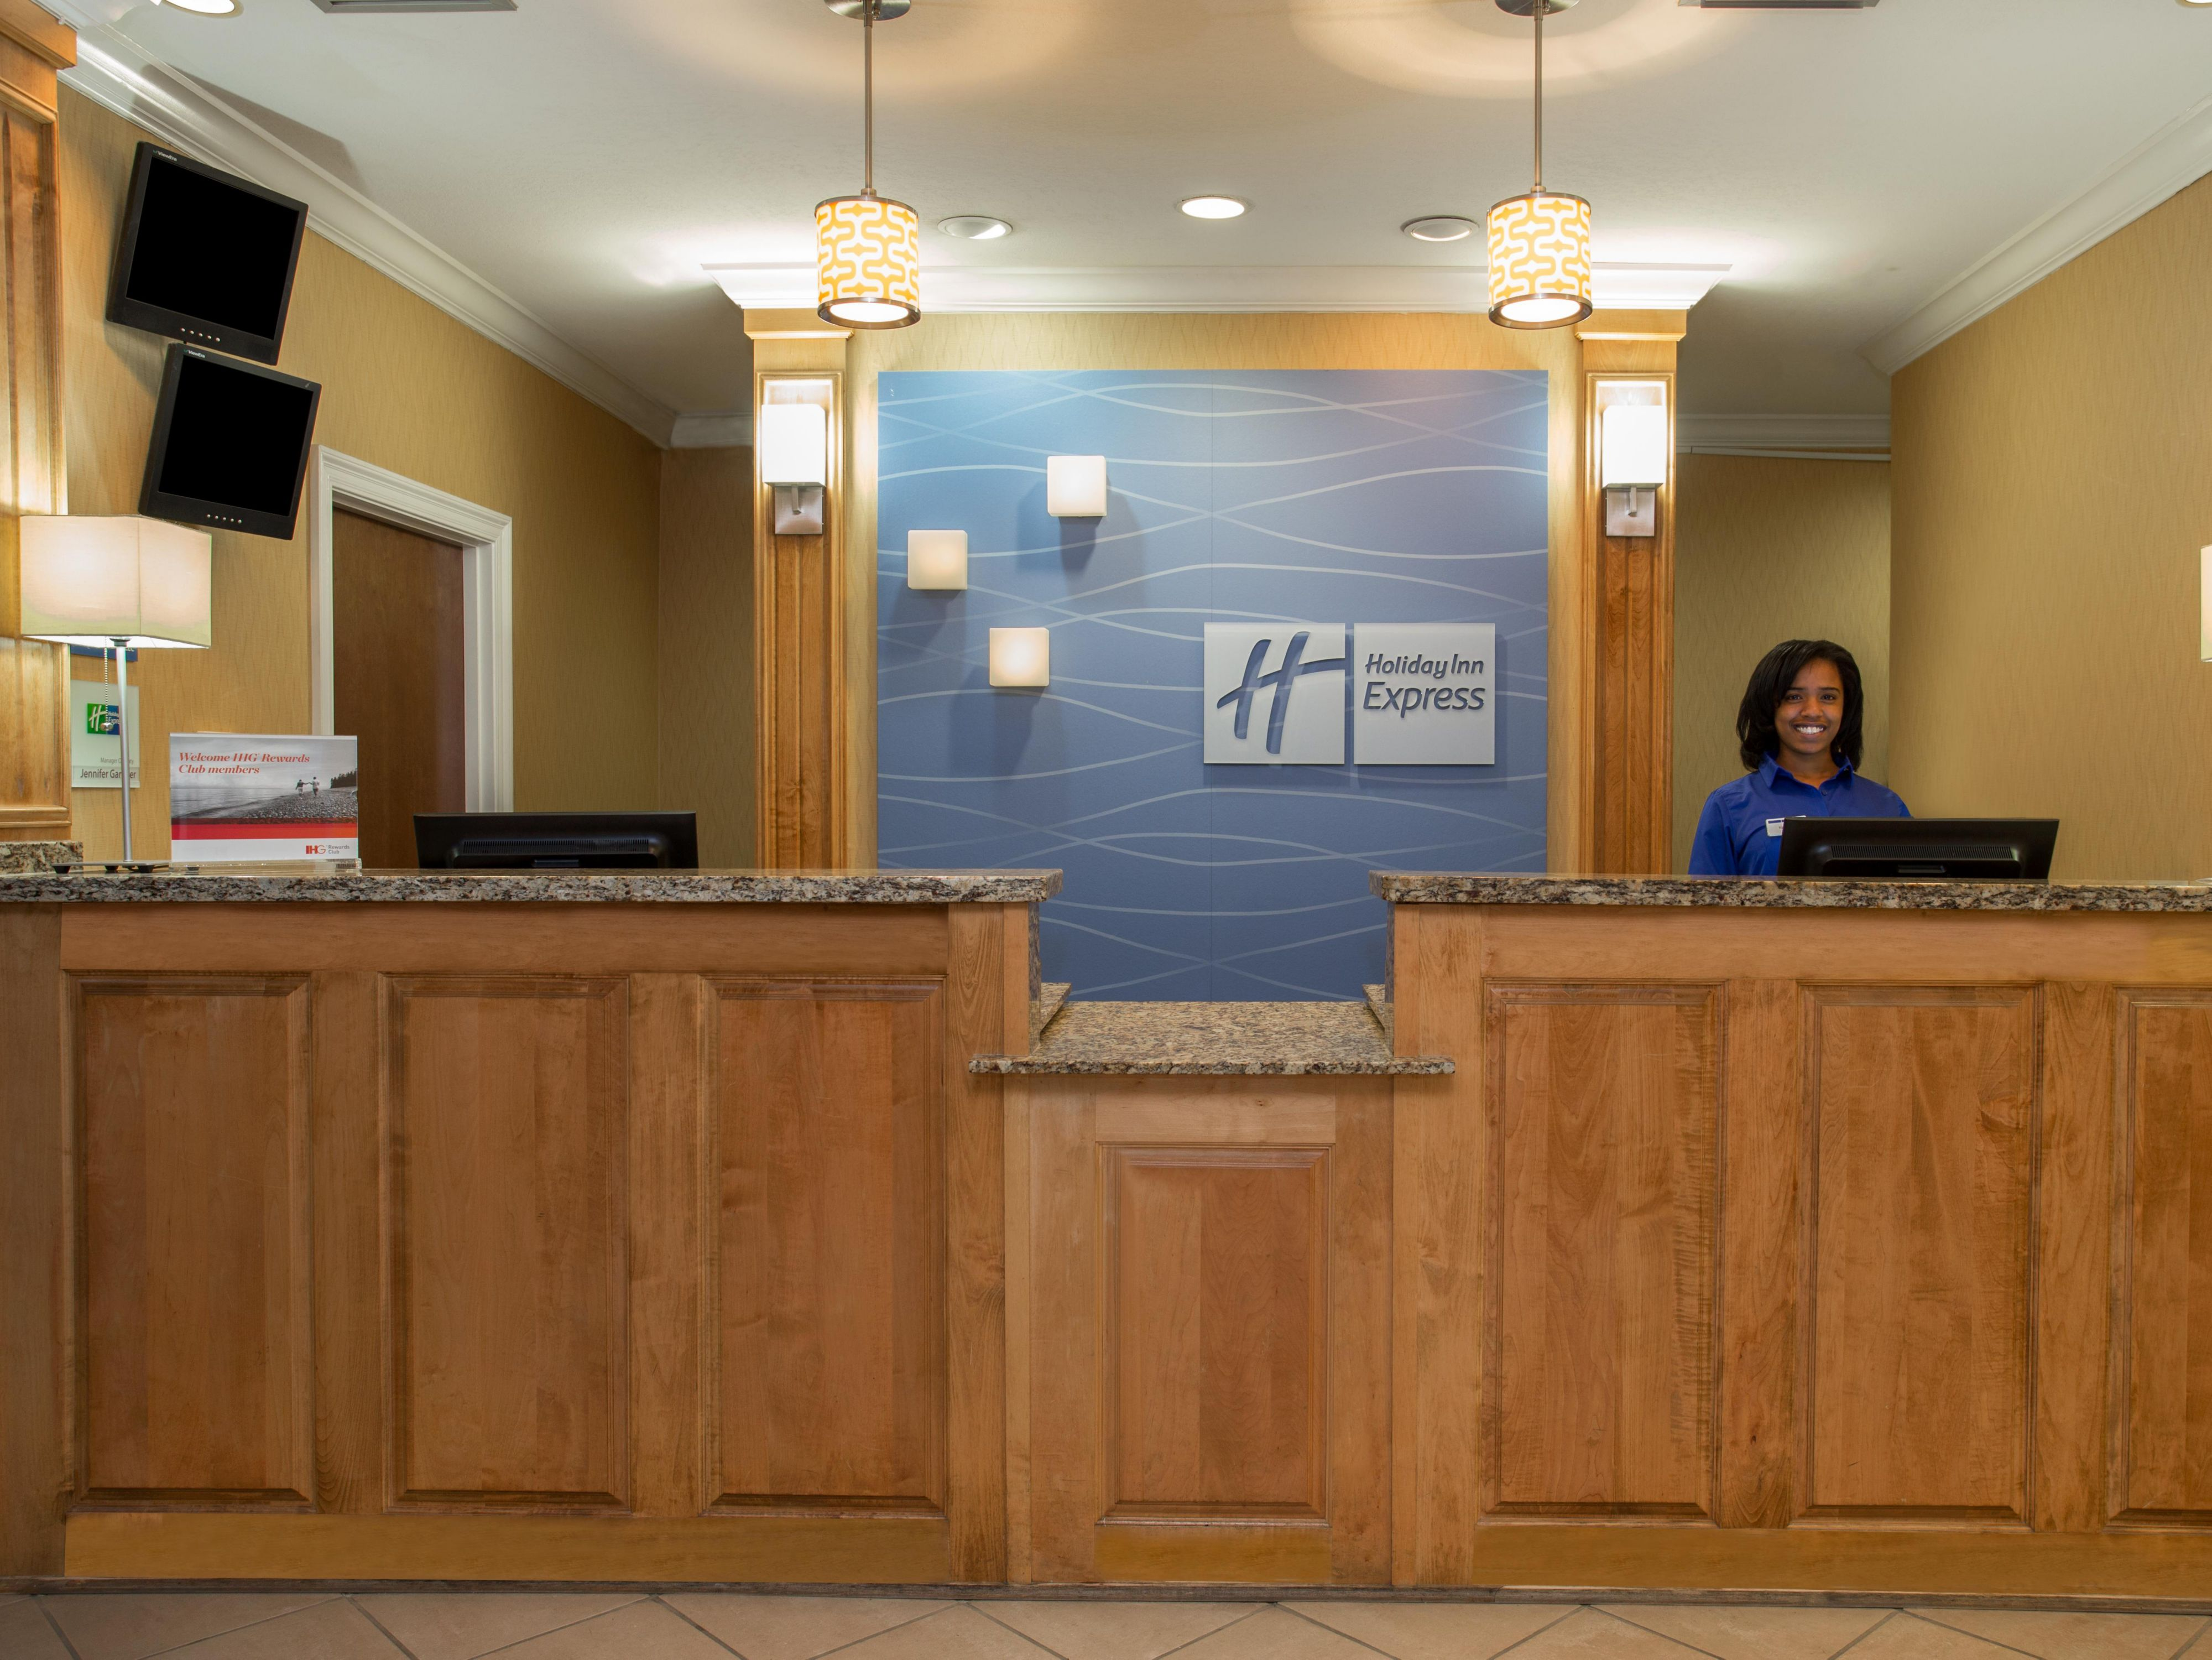 Our Front Desk staff is ready to assist you